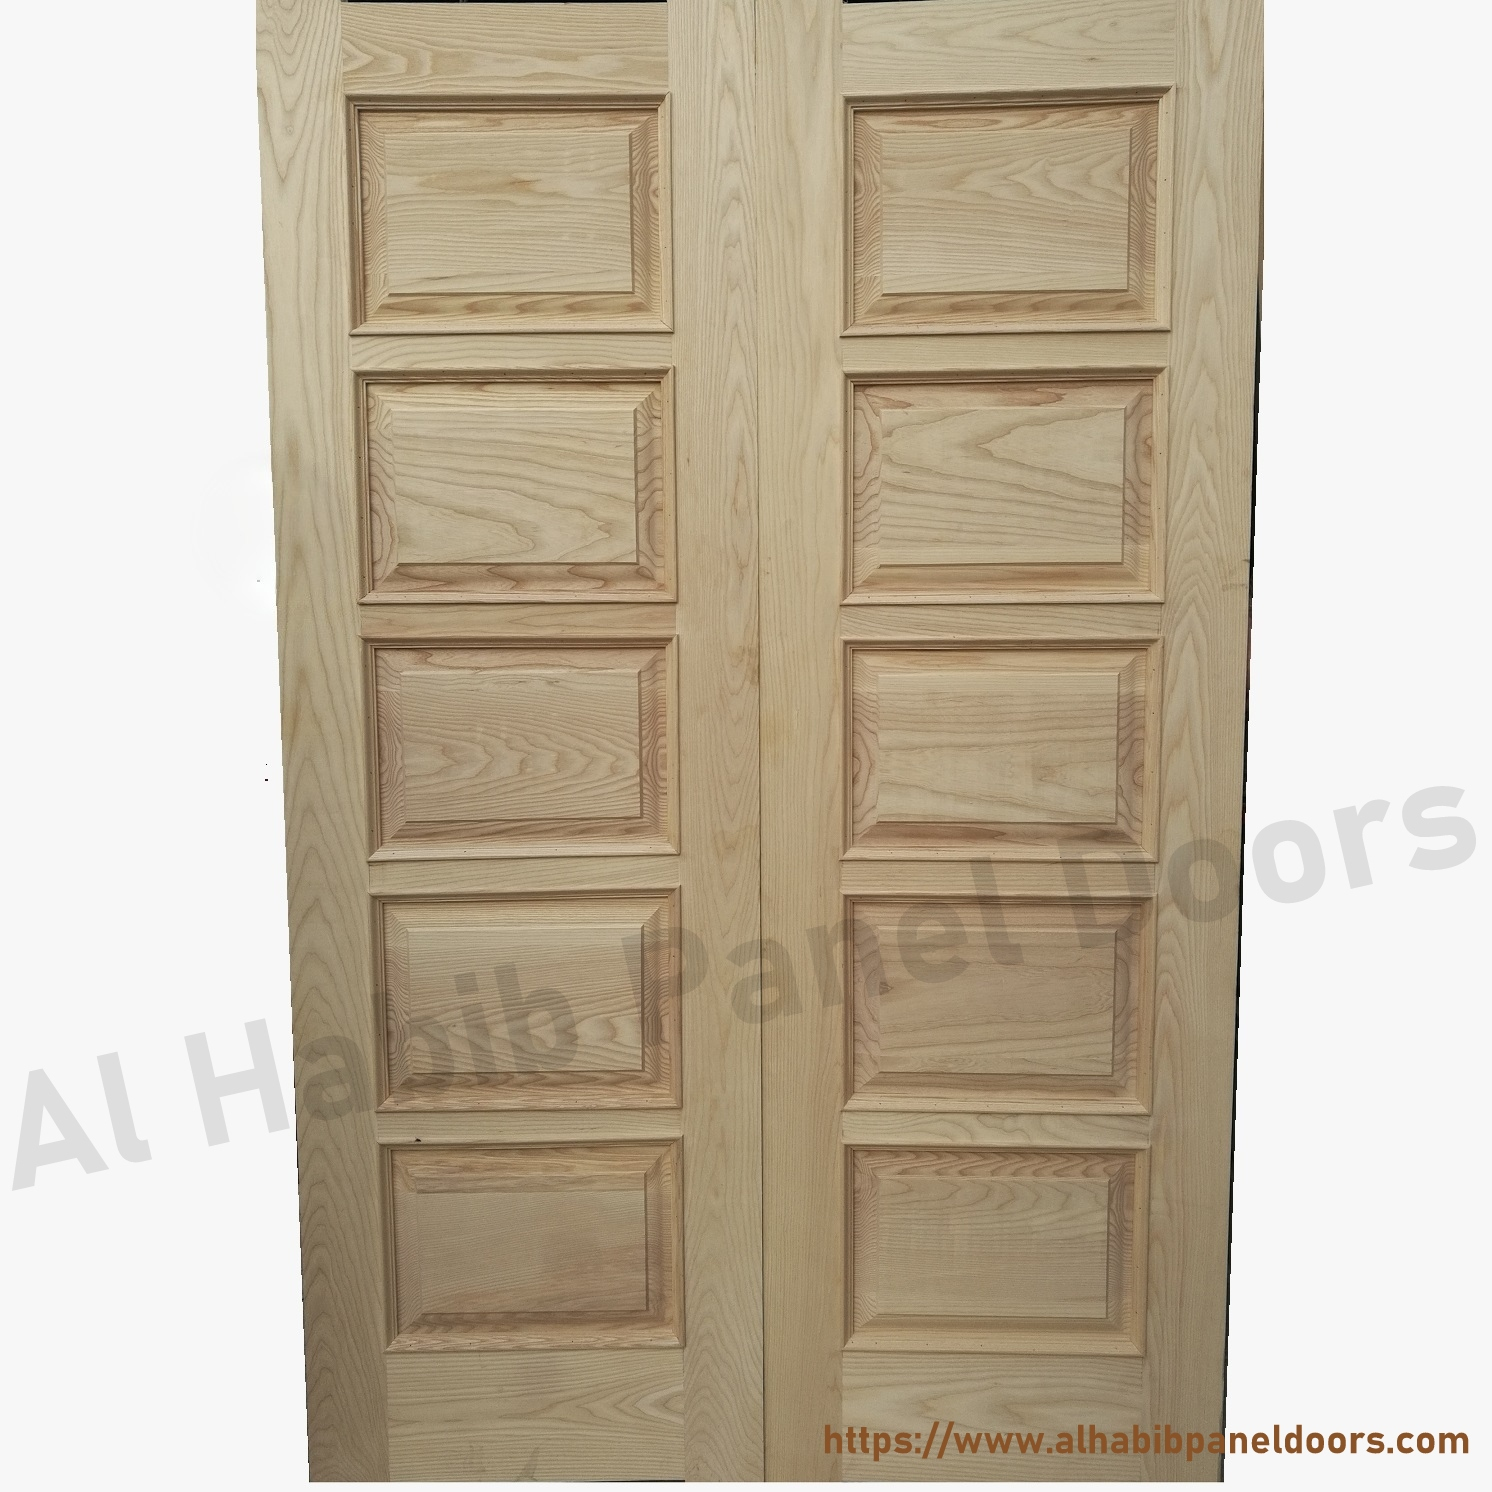 Ash Solid Wood Main Double Door Hpd414 - Main Doors - Al Habib ...